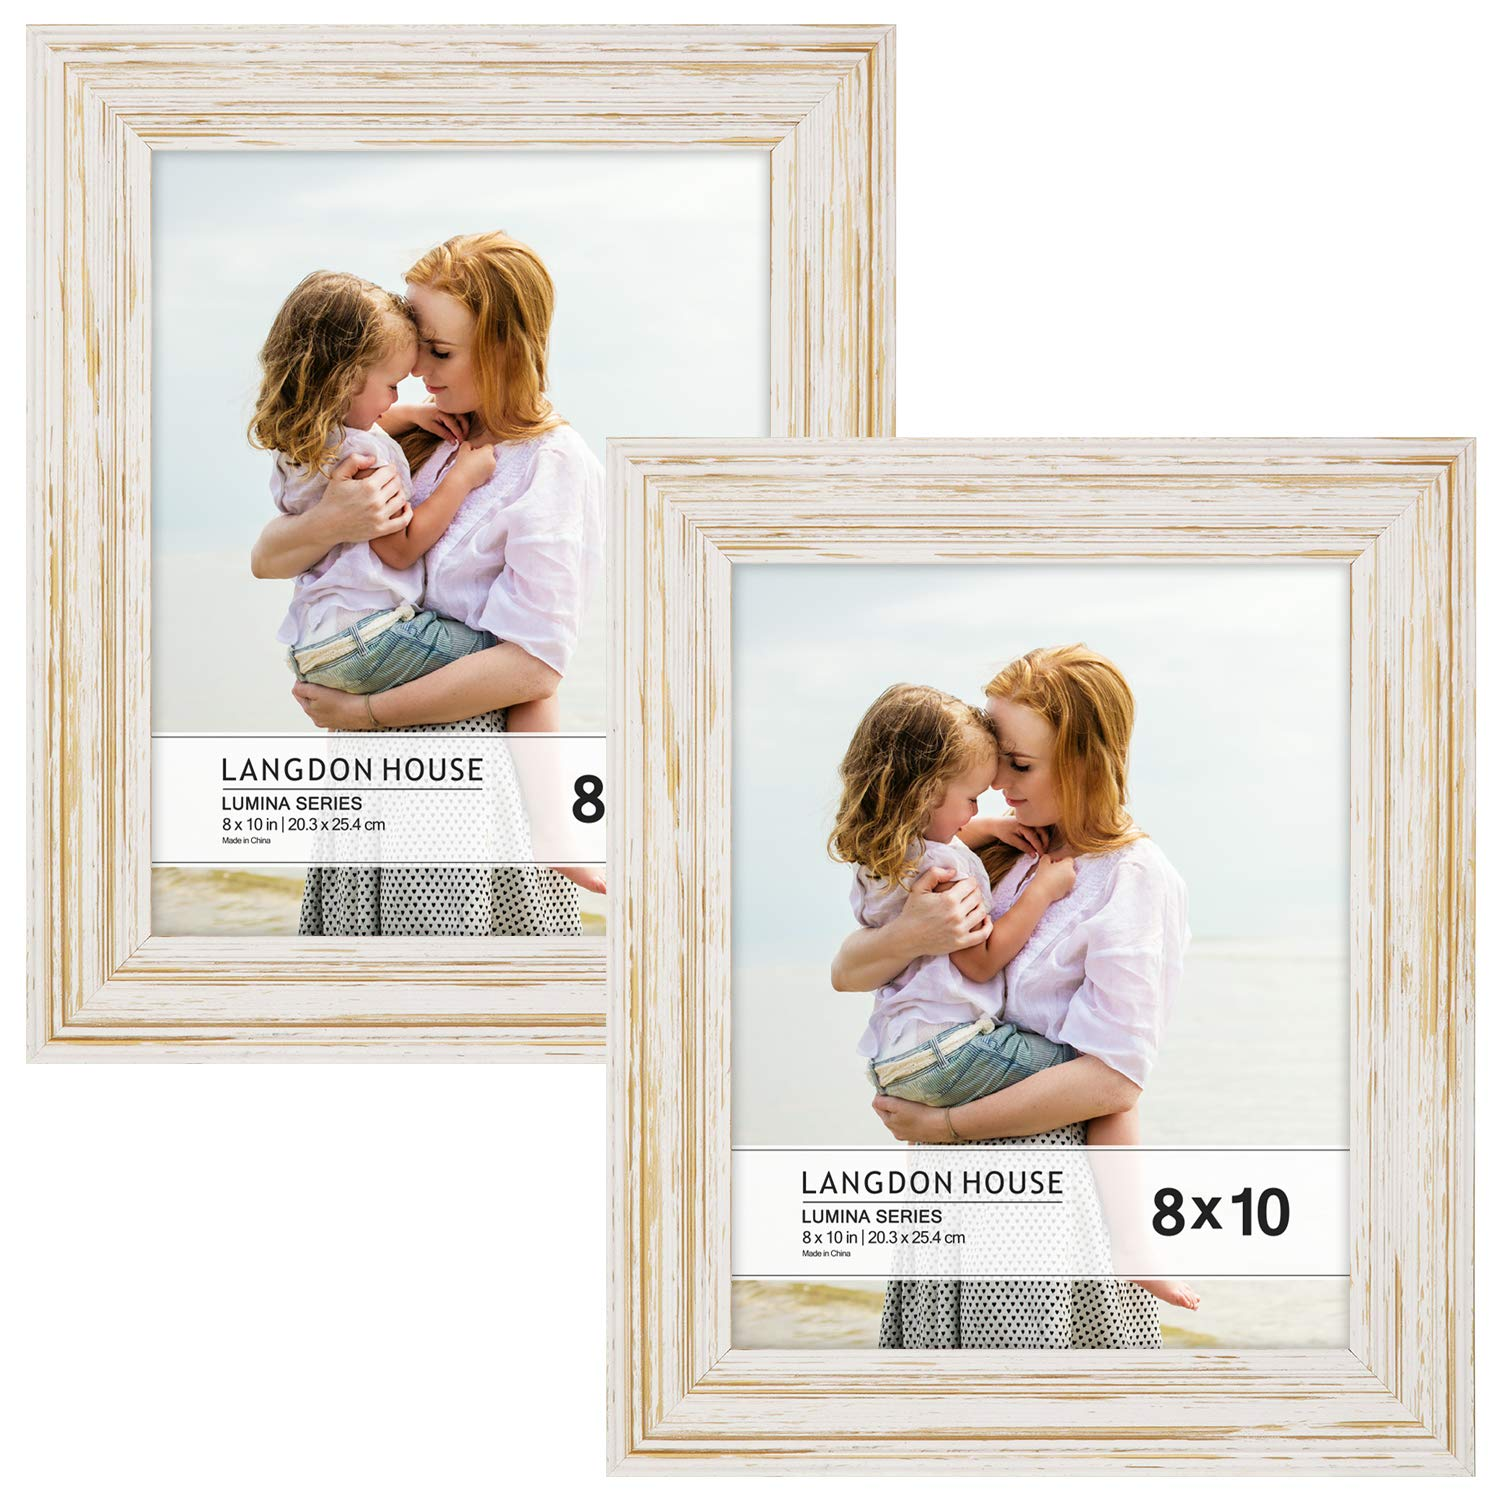 Langdons 8x10 Real Wood Picture Frames (2 Pack, Weathered White - Gold Accents), White Wooden Photo Frame 8 x 10, Wall Mount or Table Top, Set Of 2 Lumina Collection